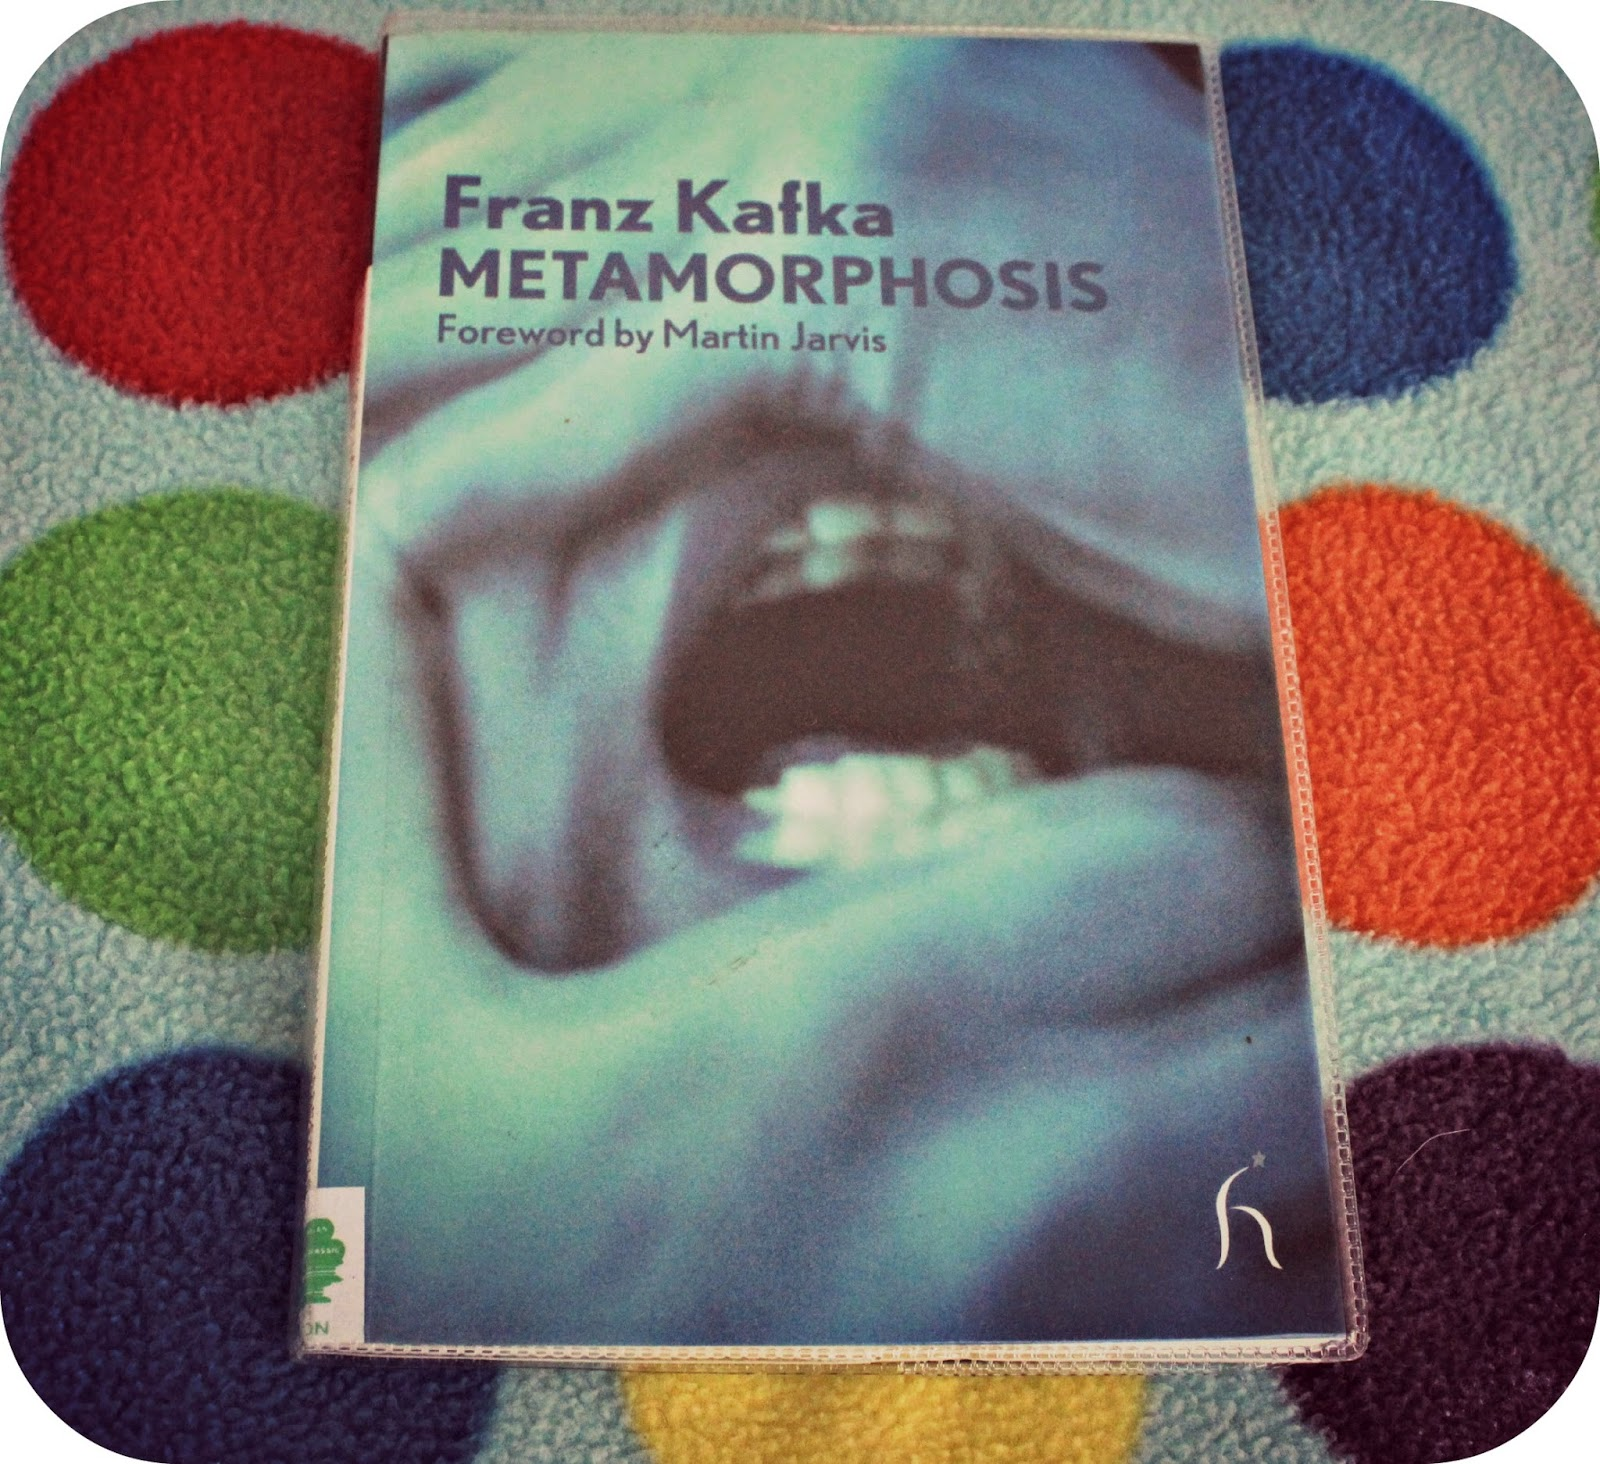 an analysis of metamorphosis a story by franz kafka - metamorphosis: the story of a traveling salesman who, shortly after returning home, awakens one day to discover that he has literally changed into a the metamorphosis by franz kafka essay - everyone goes through stressors in life, the effect of stress doesn't always have the same effects on a.